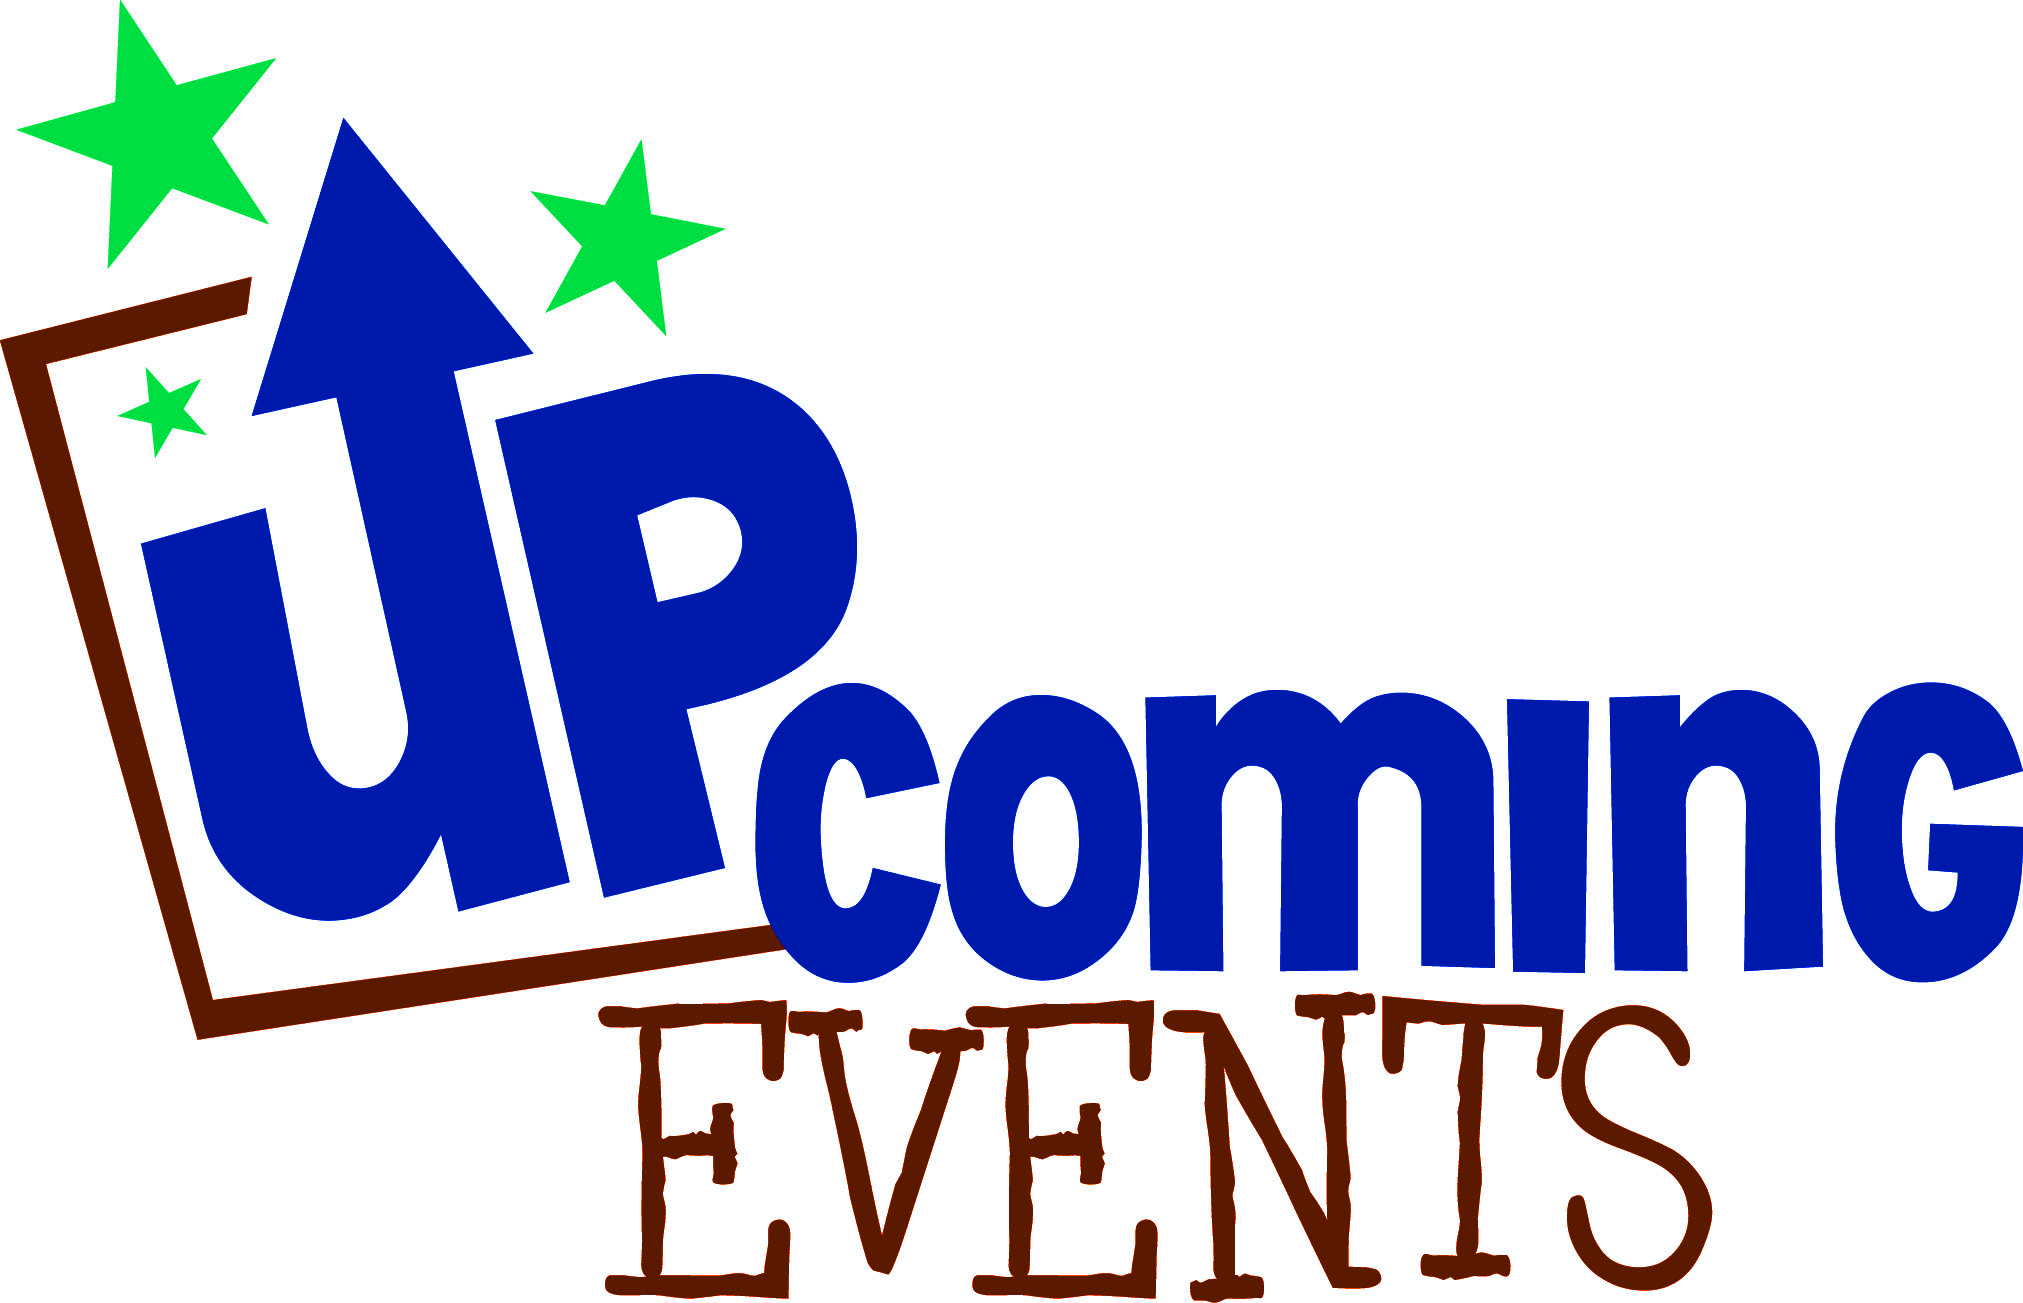 upcoming events clip art